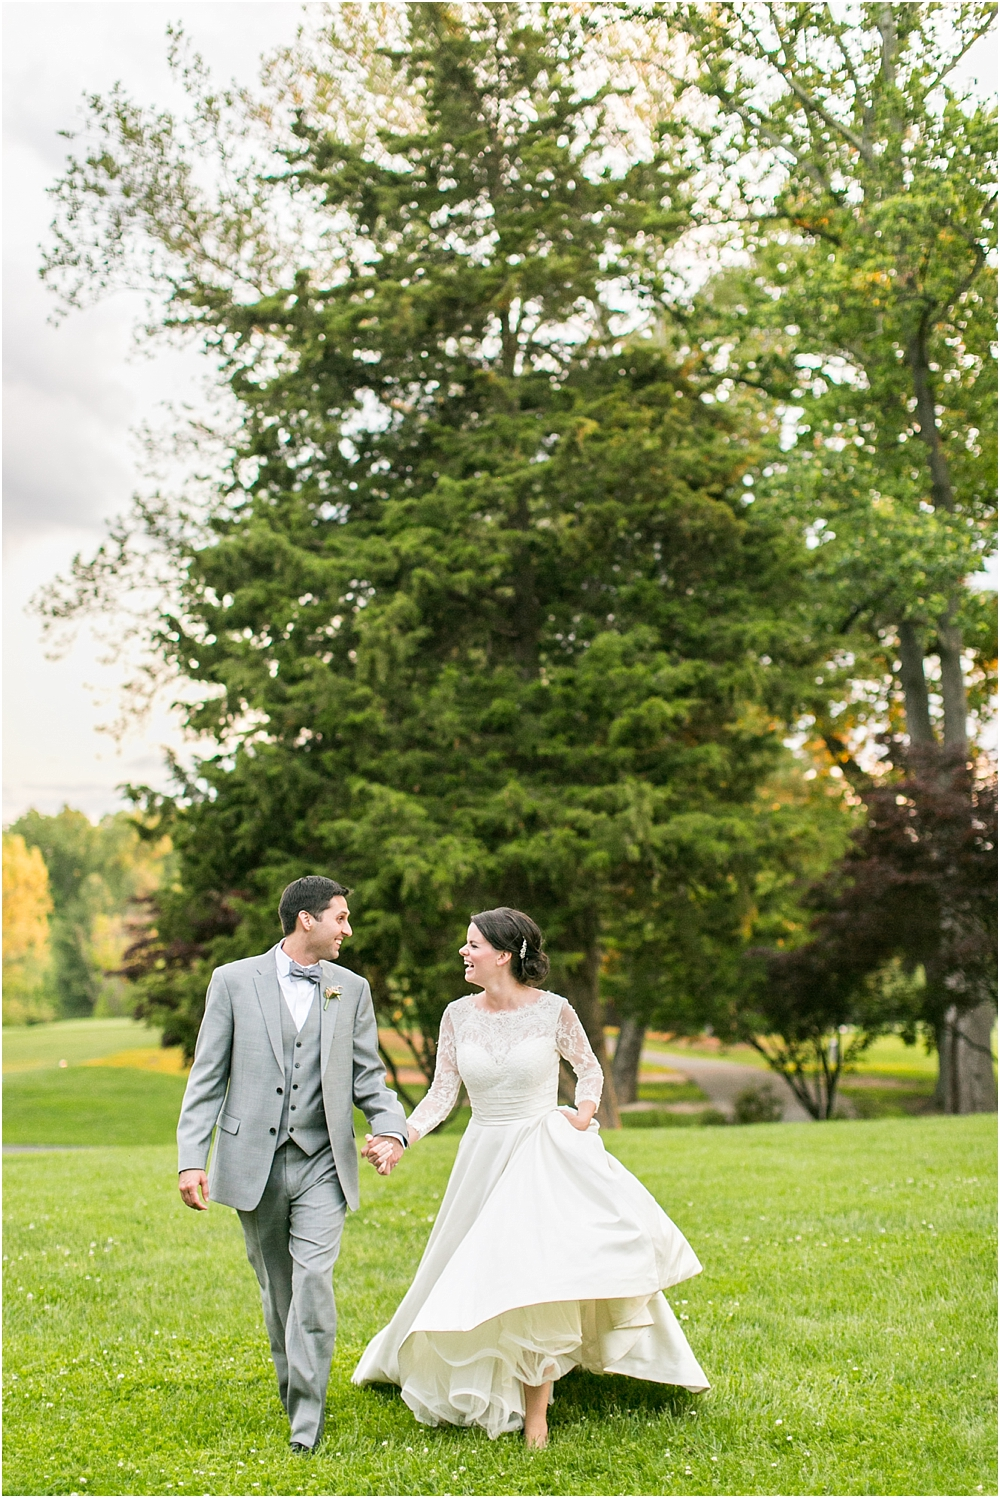 Heather + Carlos on May 15, 2016      ♥ Living Radiant Photography at Newton W hite Mansion (Mitchellville, MD)